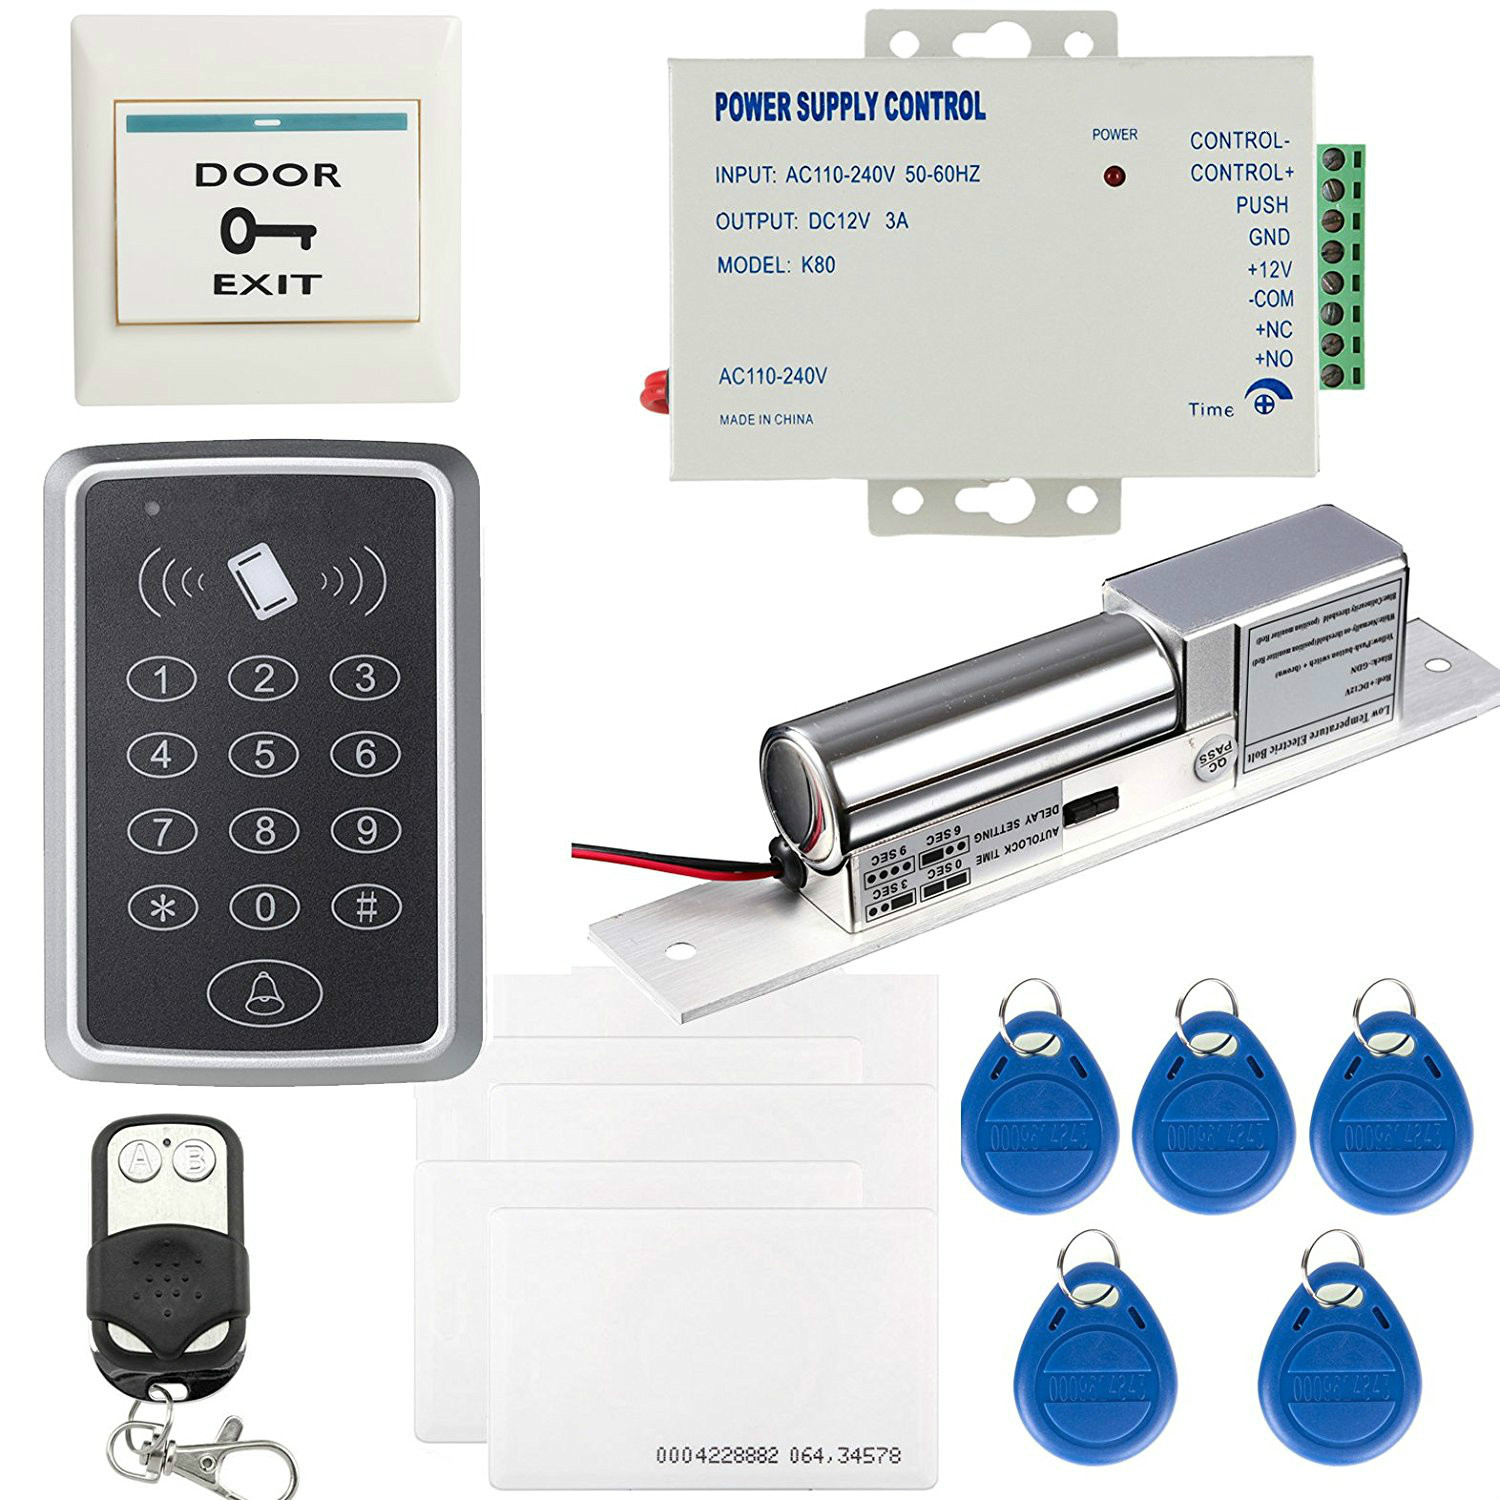 OBO HANDS 125KHz RFID Full Complete Keypad Single Door Access Control Kit Tags Electric Bolt Lock Bell Remote Exit Button full kit access control biometric fingerprint x6 electric strik lock power supply exit button door bell remote control key cards